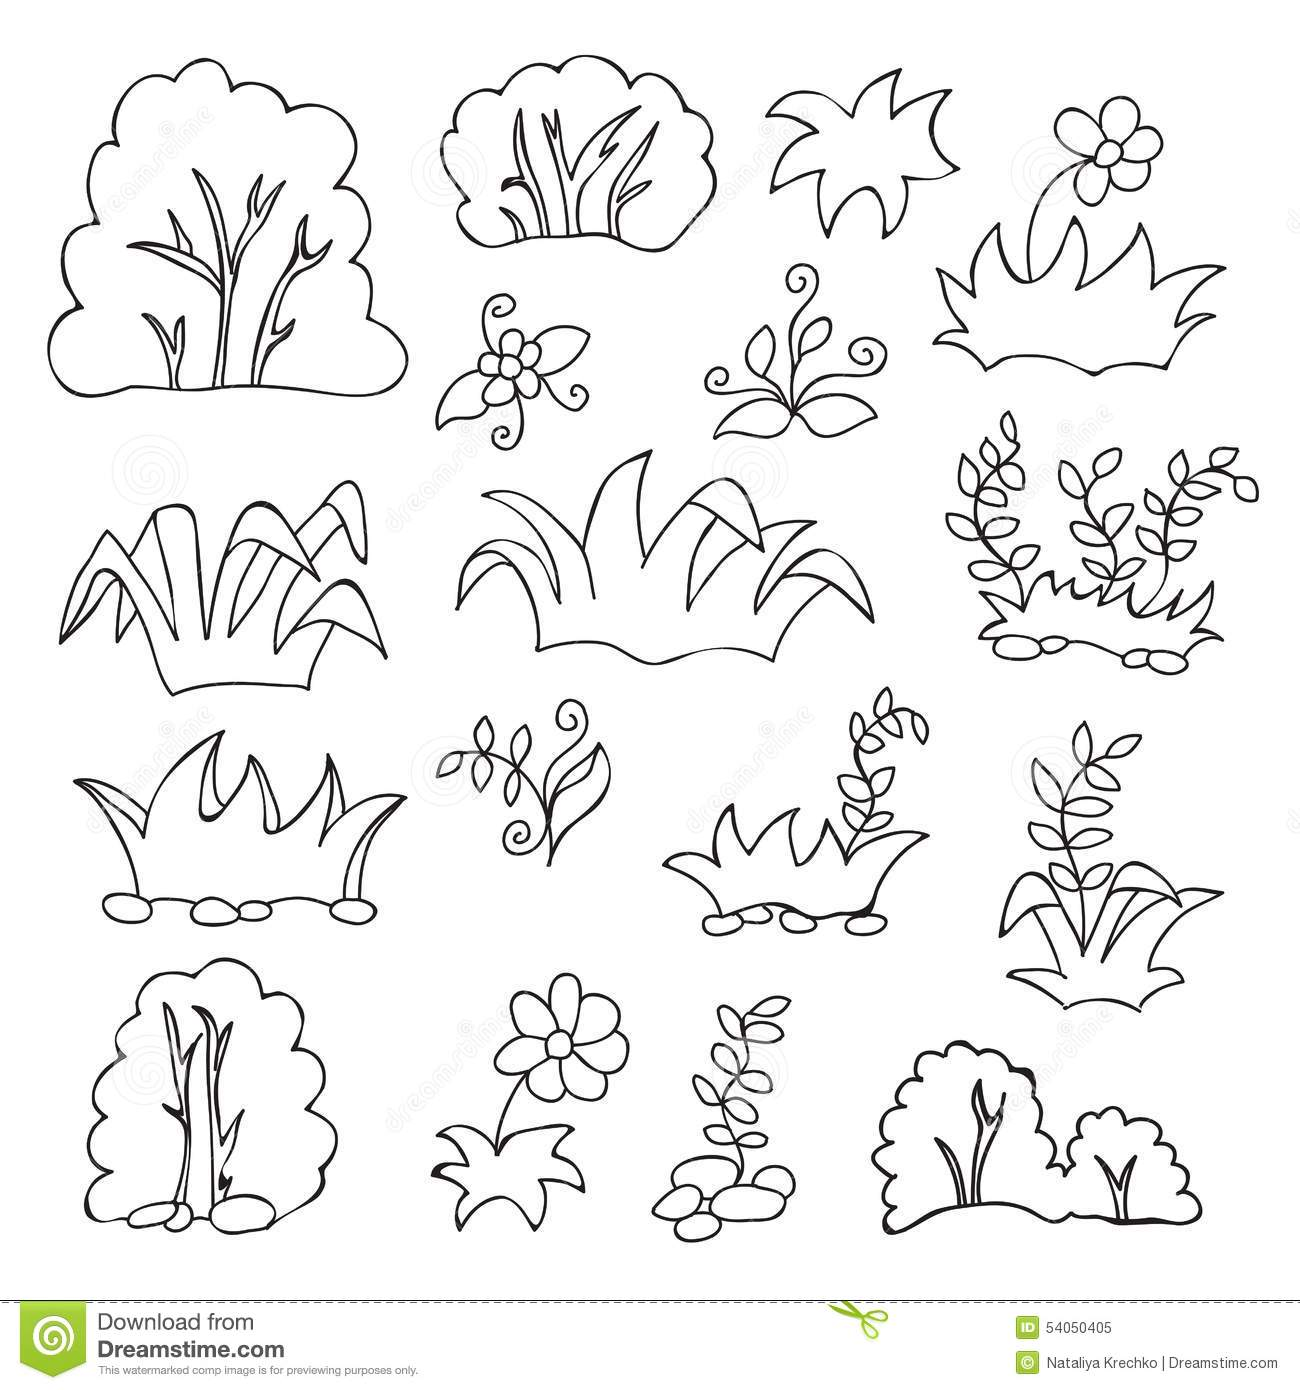 Grass And Flowers Cartoon Coloring Book For Kids Stock